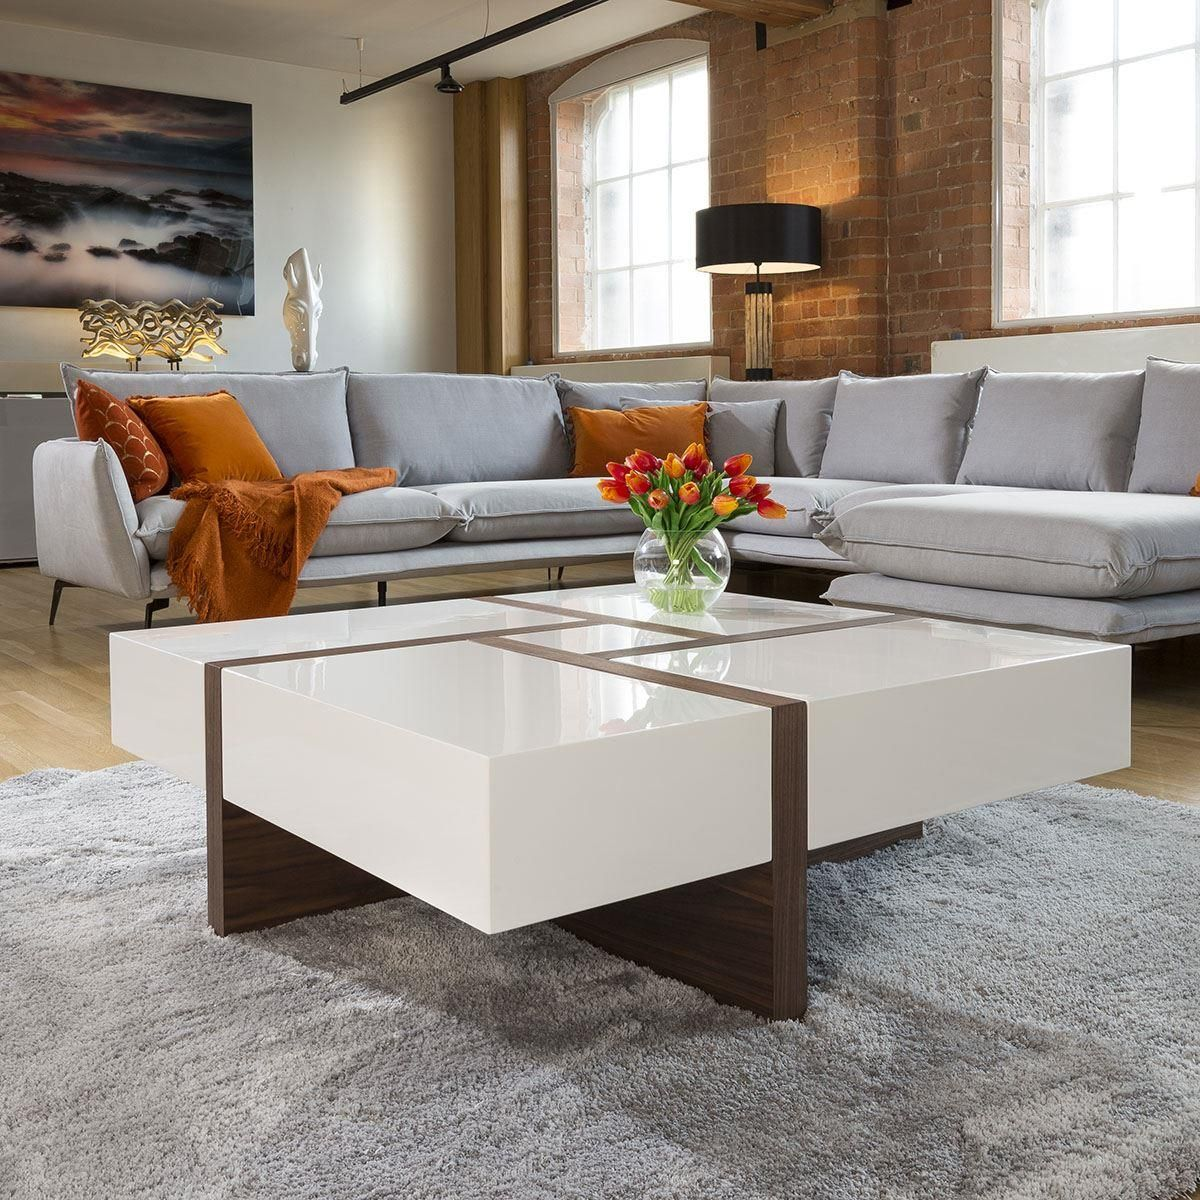 Huge Modern Square 1000mm Coffee Table White High Gloss Walnut Legs Coffee Table Square Coffee Table Coffee Table White [ 1200 x 1200 Pixel ]